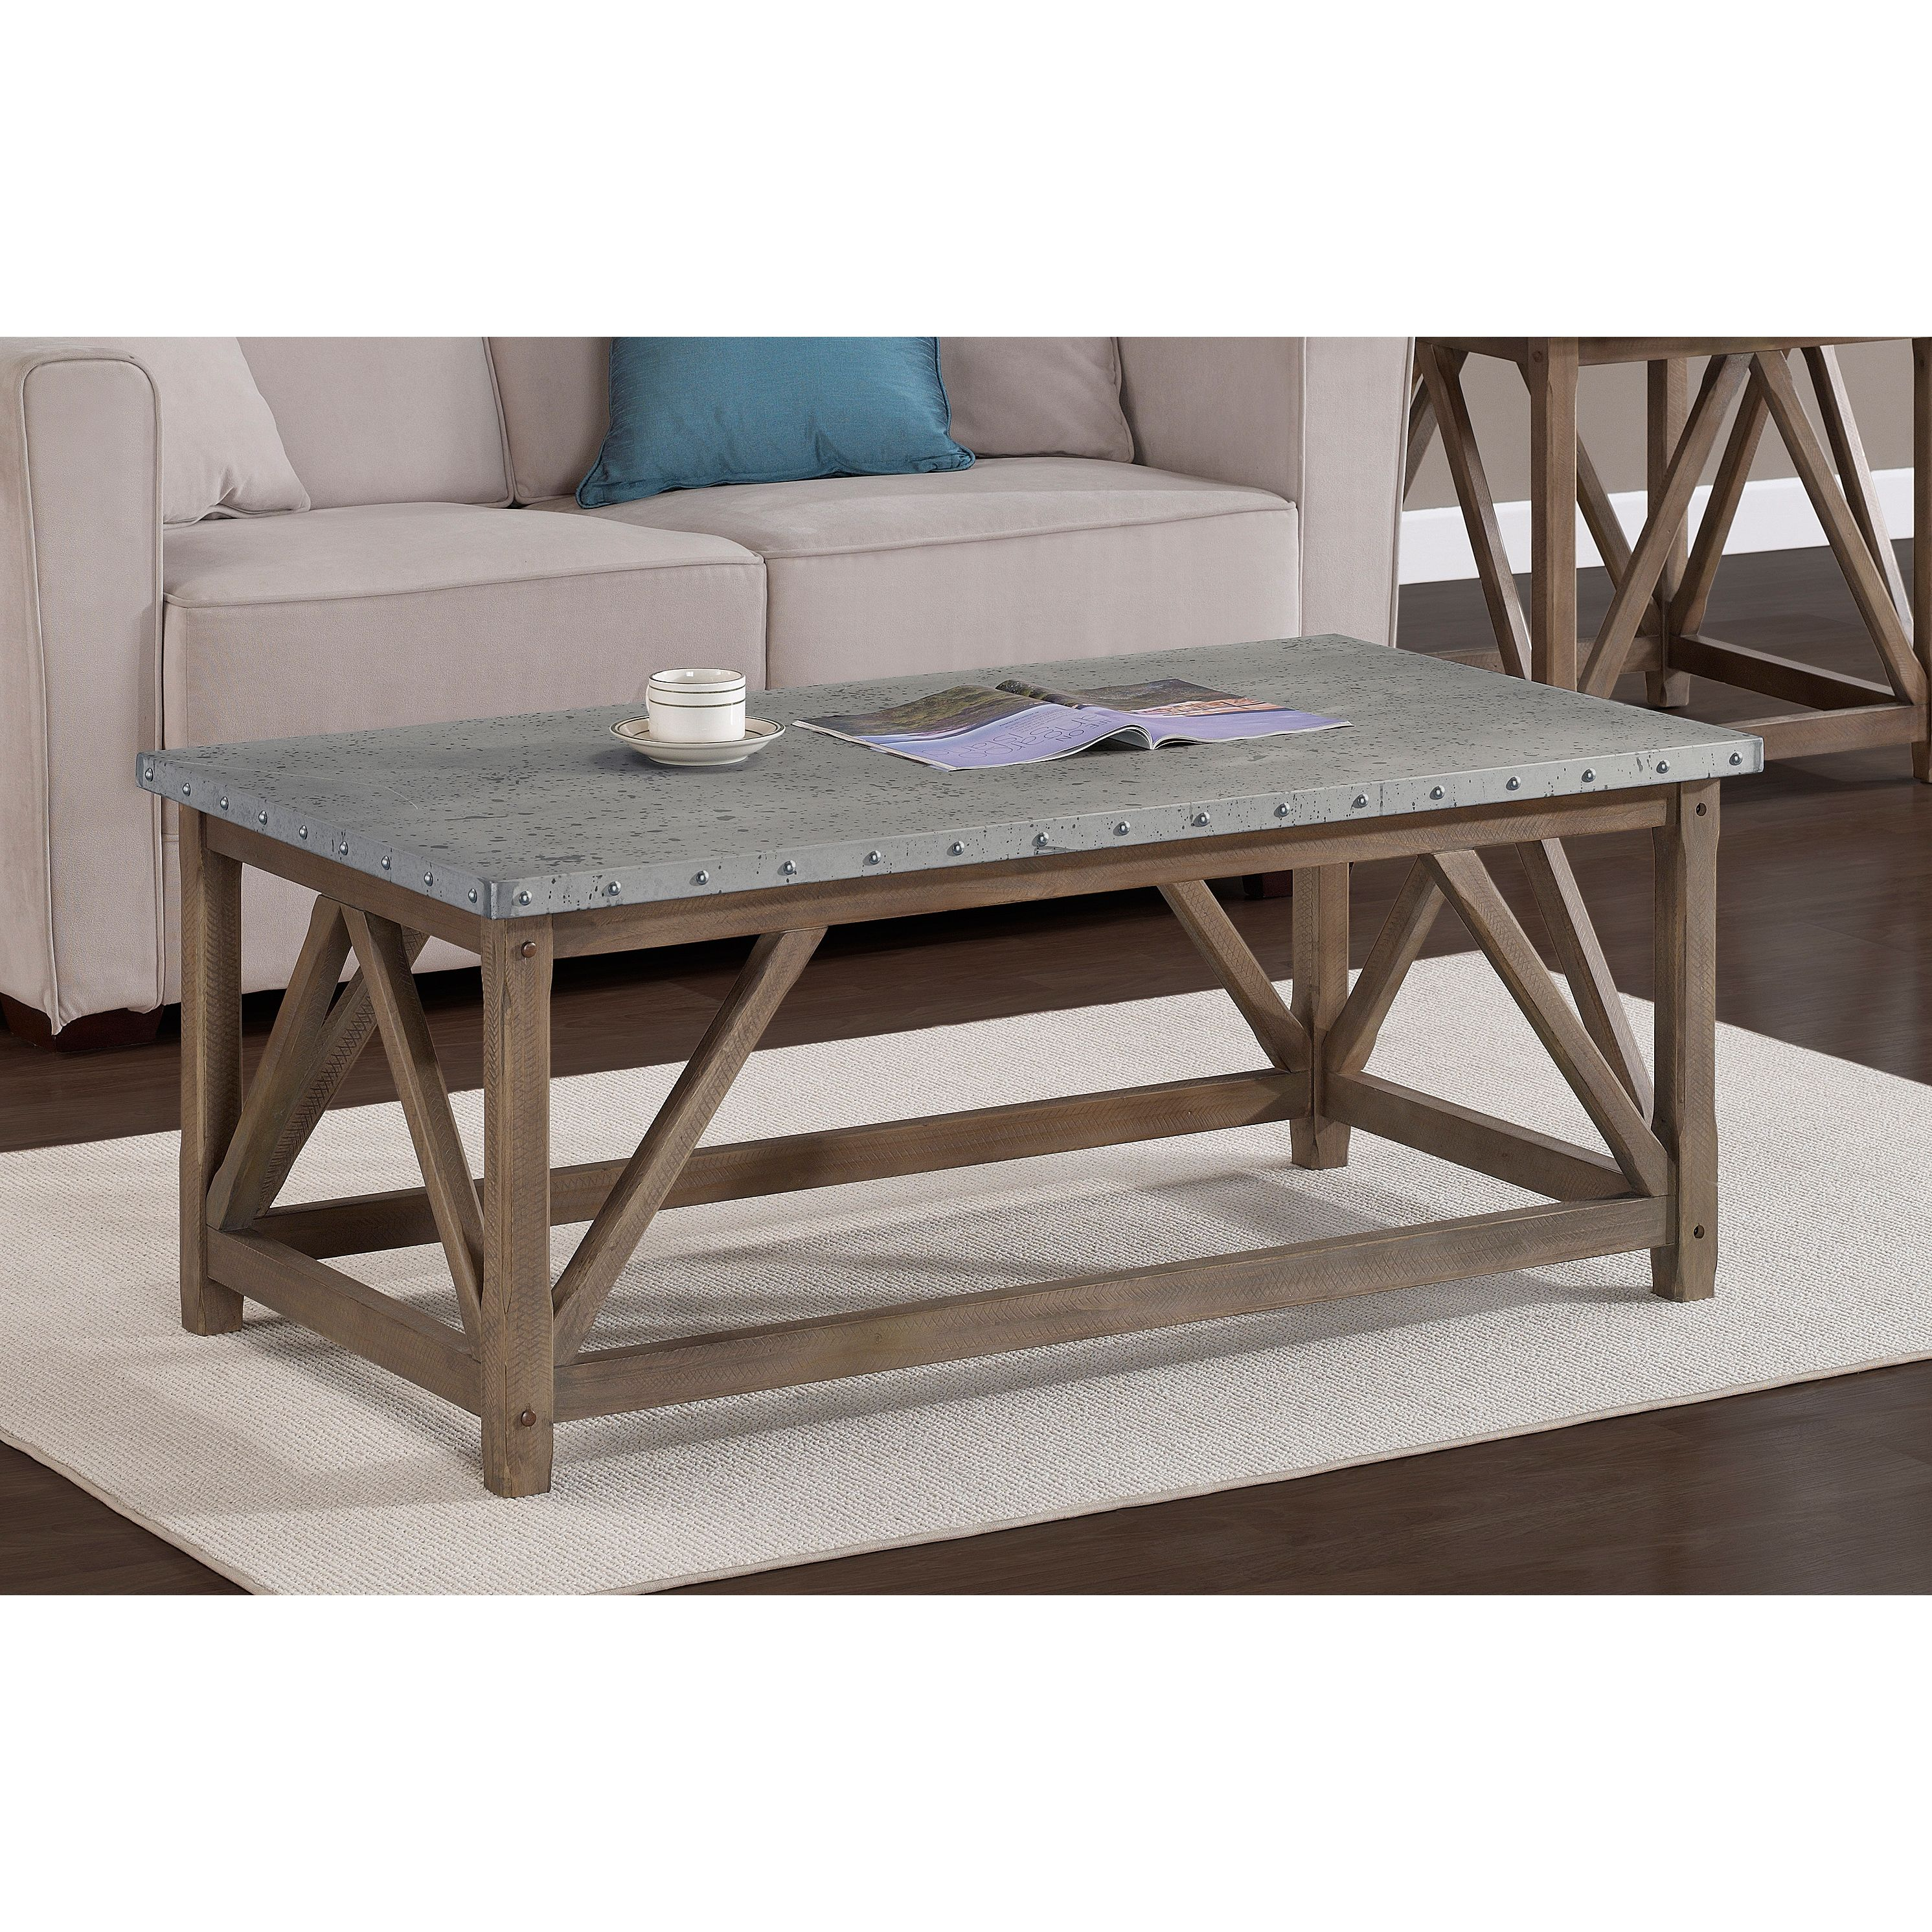 amazing unique accent end tables room and cabinet outdoor white round chairs kijiji cool tall restaurant storage glass furniture living modern threshold ott side ideas antique for